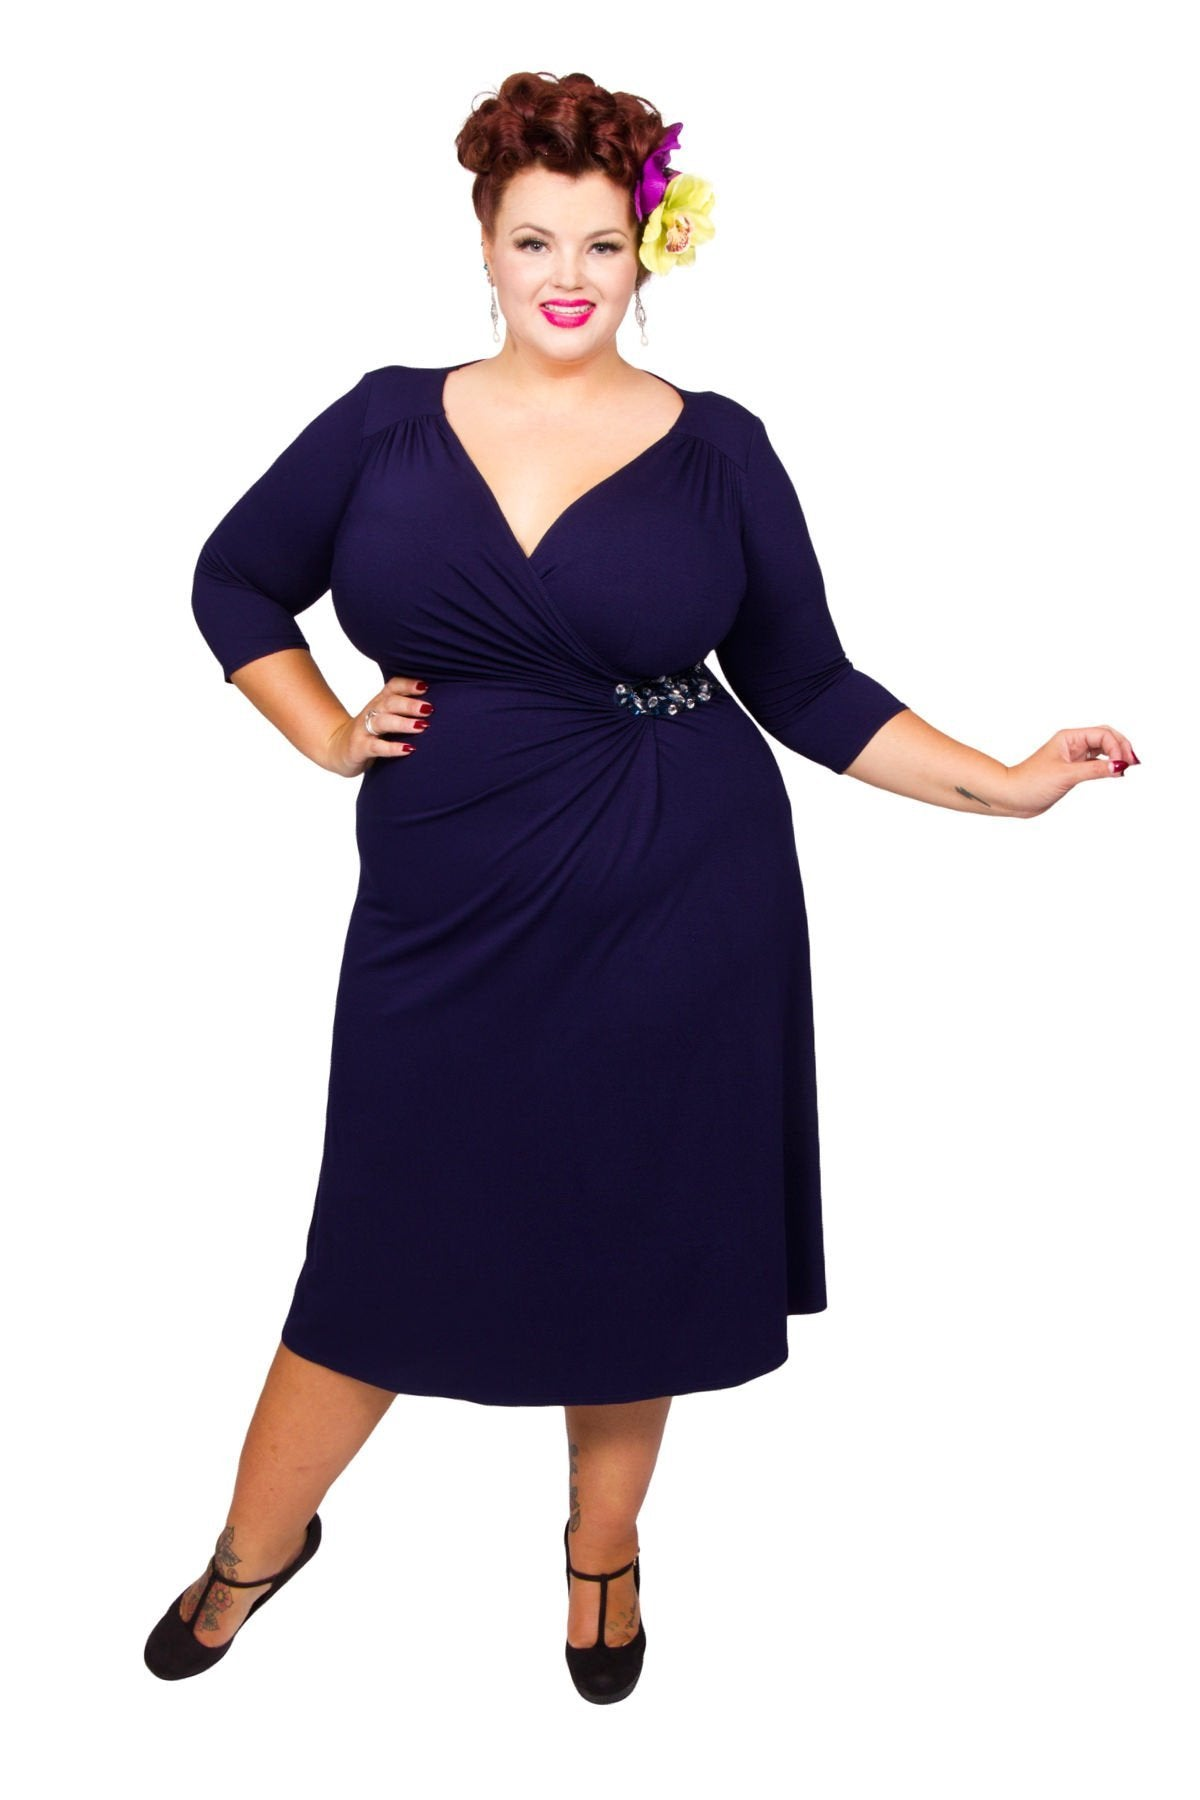 1940s Fashion Advice for Short Women Side Beaded Jersey Dress - Midnight  14 £70.00 AT vintagedancer.com